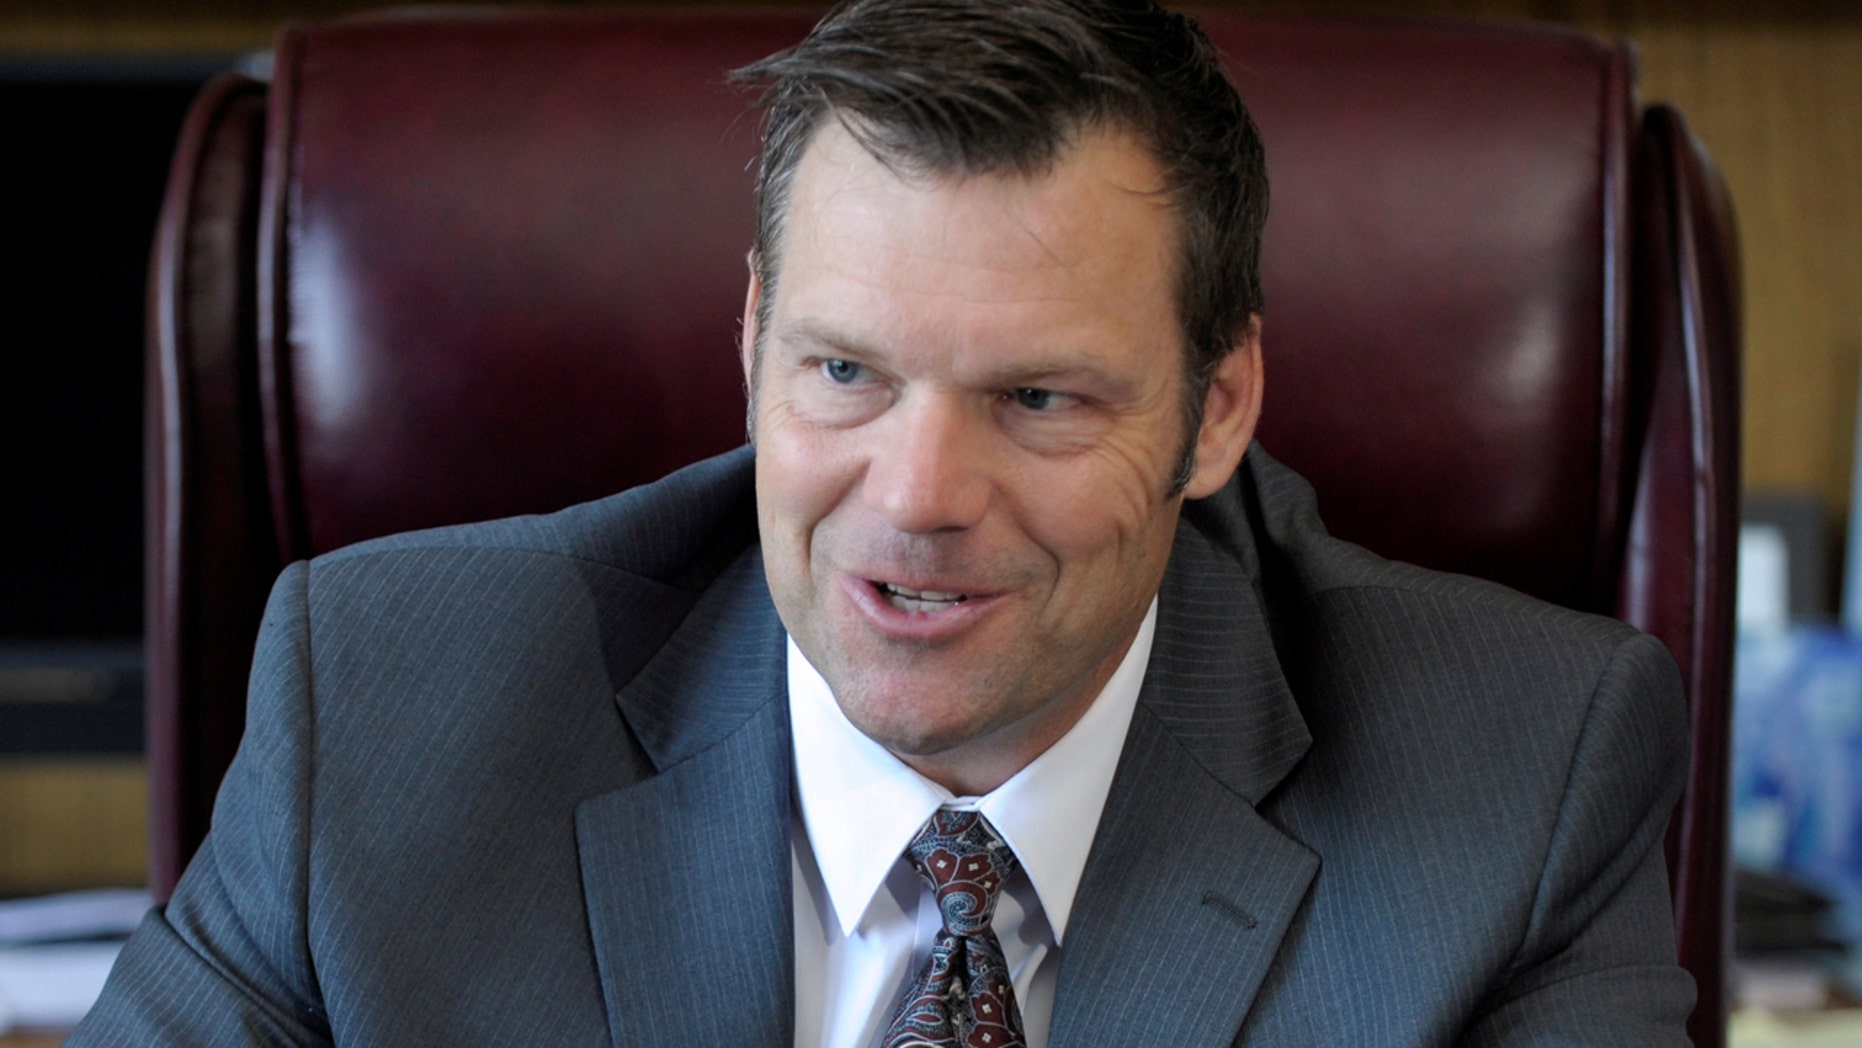 Kansas Secretary of State Kris Kobach talks about the Kansas voter ID law that he pushed to combat what he believes to be rampant voter fraud in the United States in his Topeka, Kansas, U.S., office May 12, 2016. REUTERS/Dave Kaup TPX IMAGES OF THE DAY      - D1BETHJUBZAA